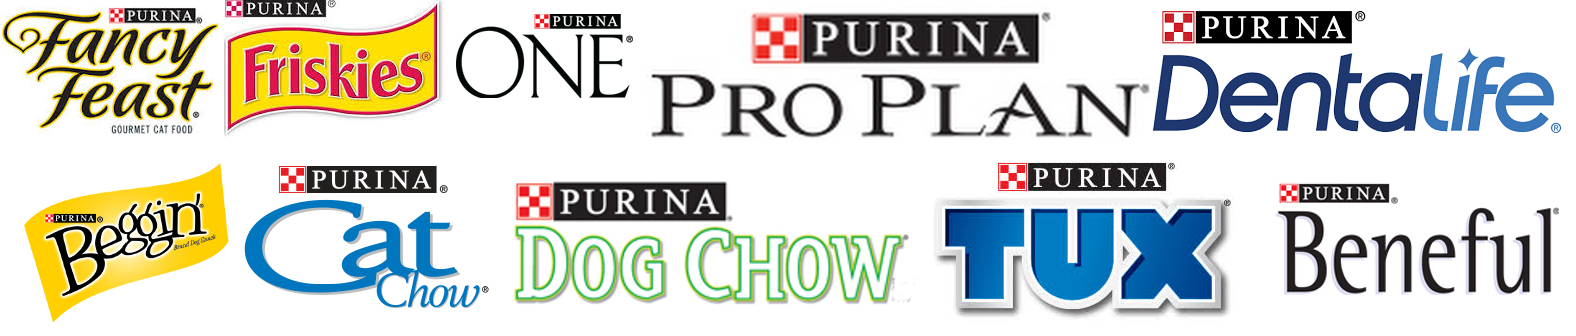 Logos of Fancy Feast, Friskies, Purian ProPlan, Purina DentaLife, Beggin, Cat Chow, Dog Chow, Tux and Beneful